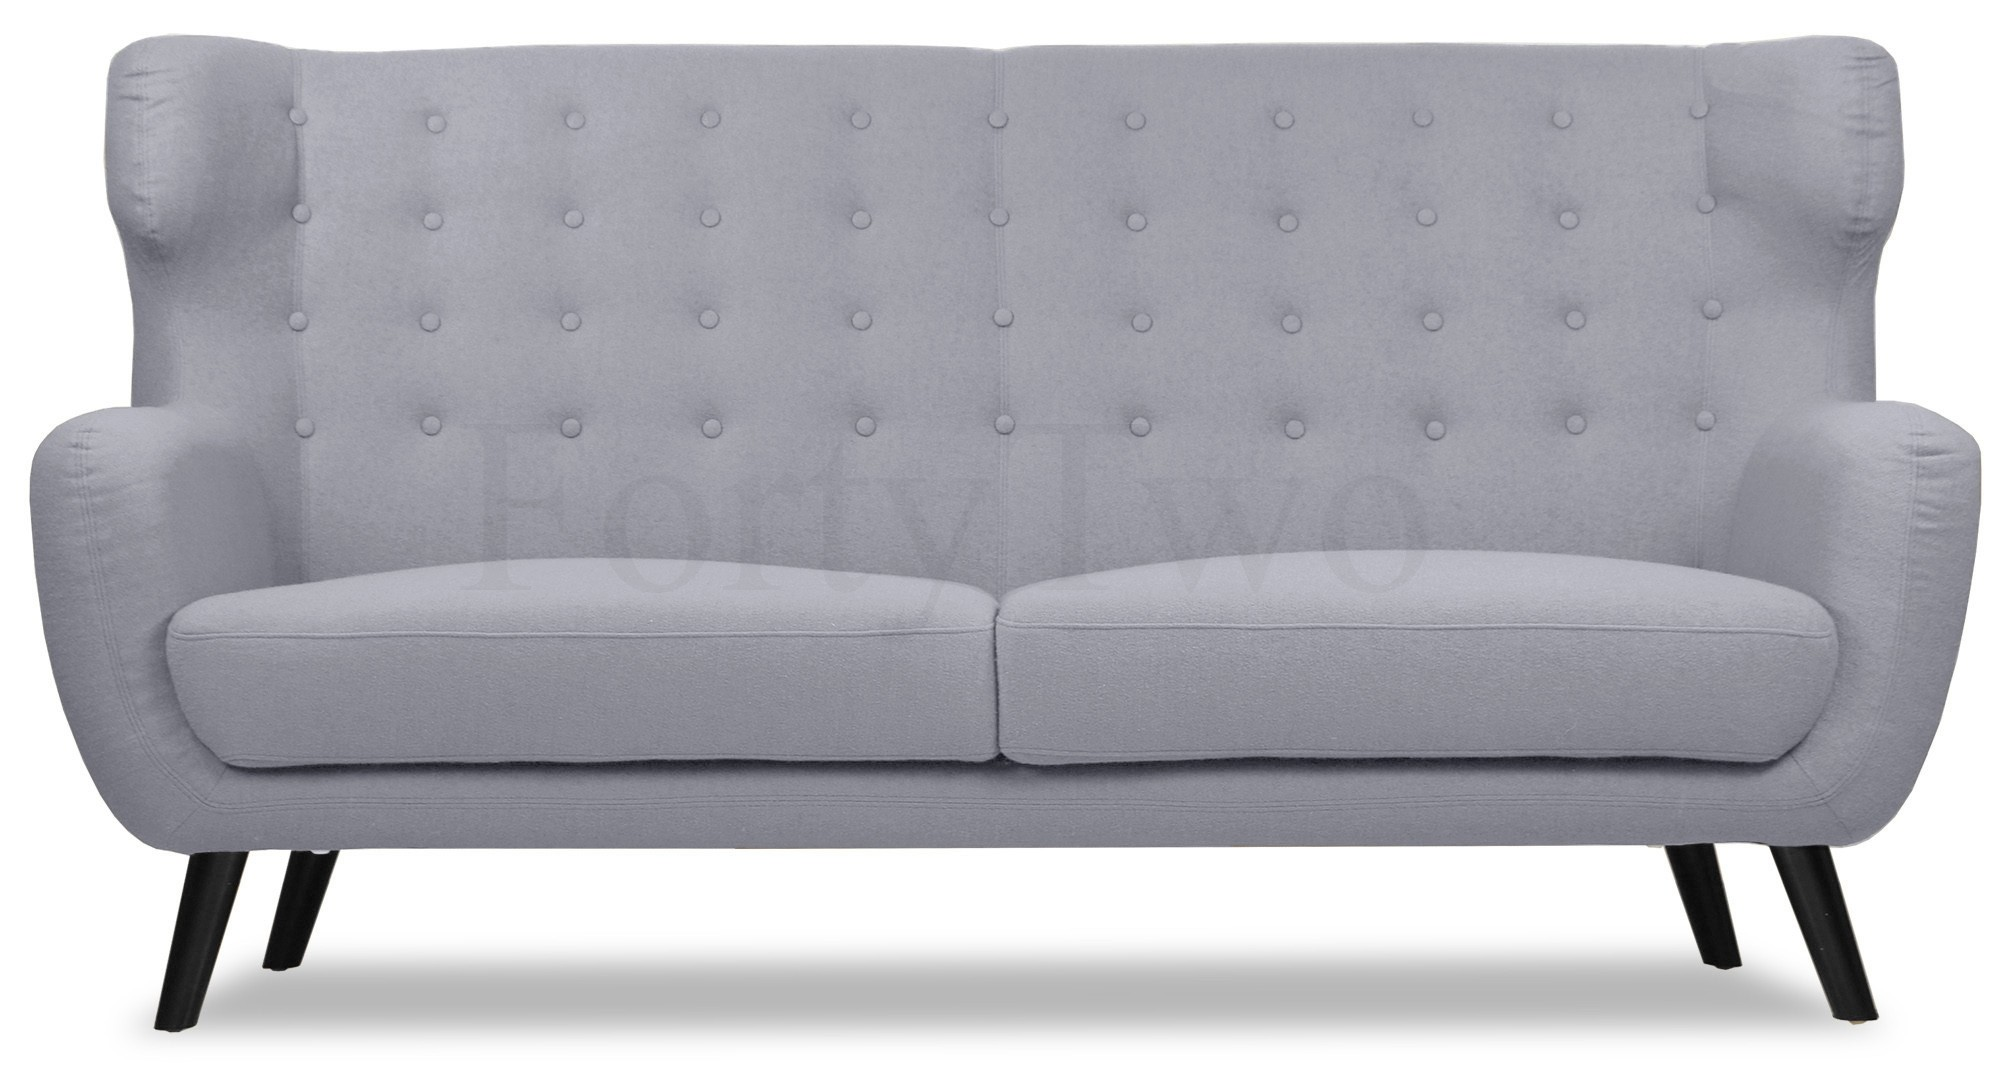 grey 3 seater sofa lincoln fabric 3 seater sofa in grey. Black Bedroom Furniture Sets. Home Design Ideas